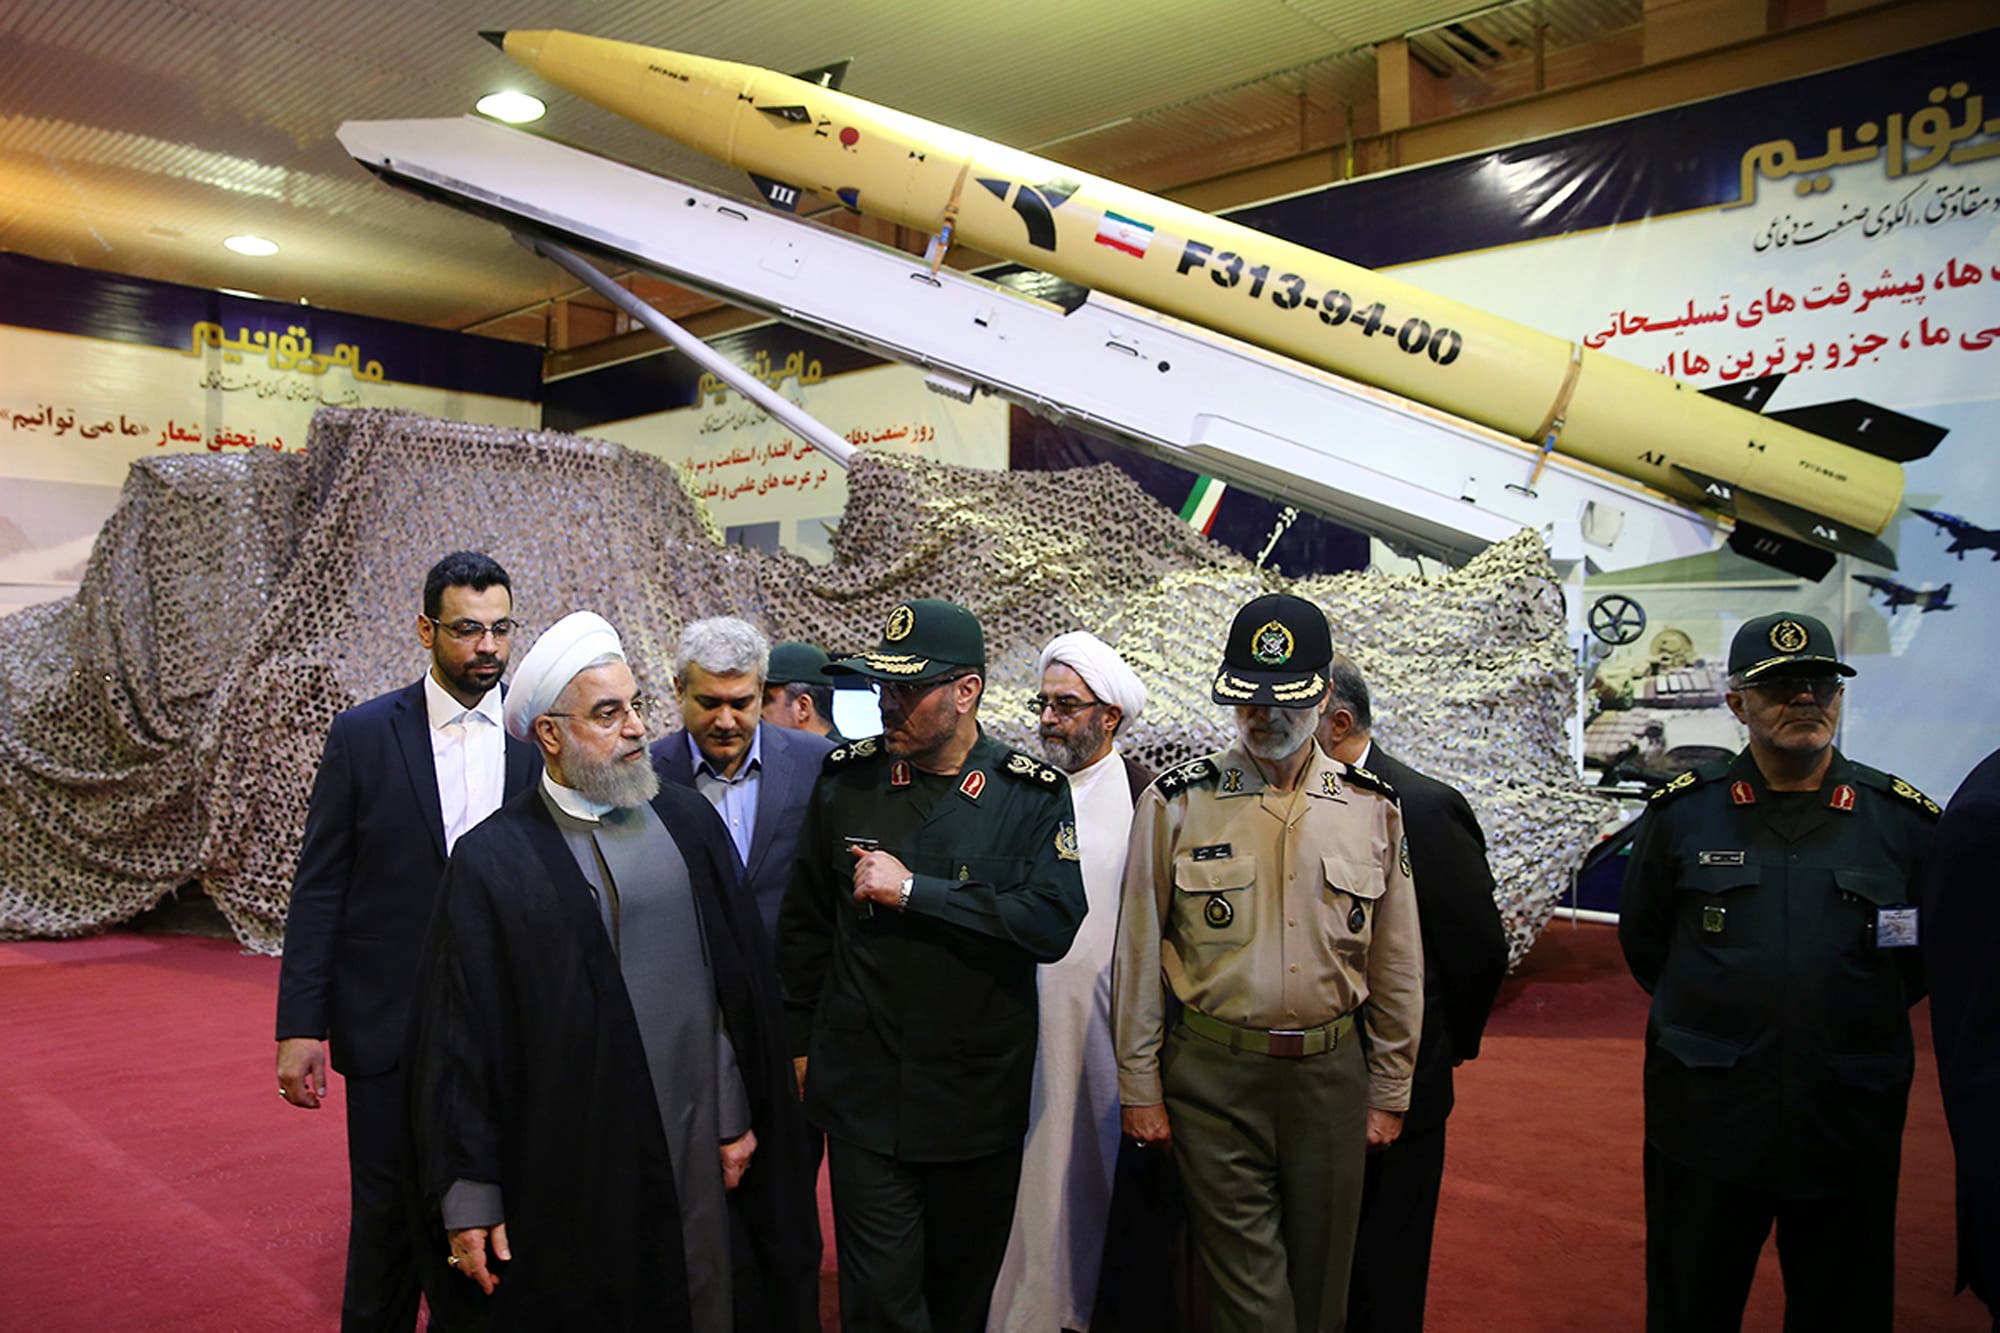 Iran's President Hassan Rouhani, left, listens to Defense Minister Hossein Dehghan after unveiling the surface-to-surface Fateh-313, or Conqueror, missile in a ceremony marking Defense Industry Day, Iran.